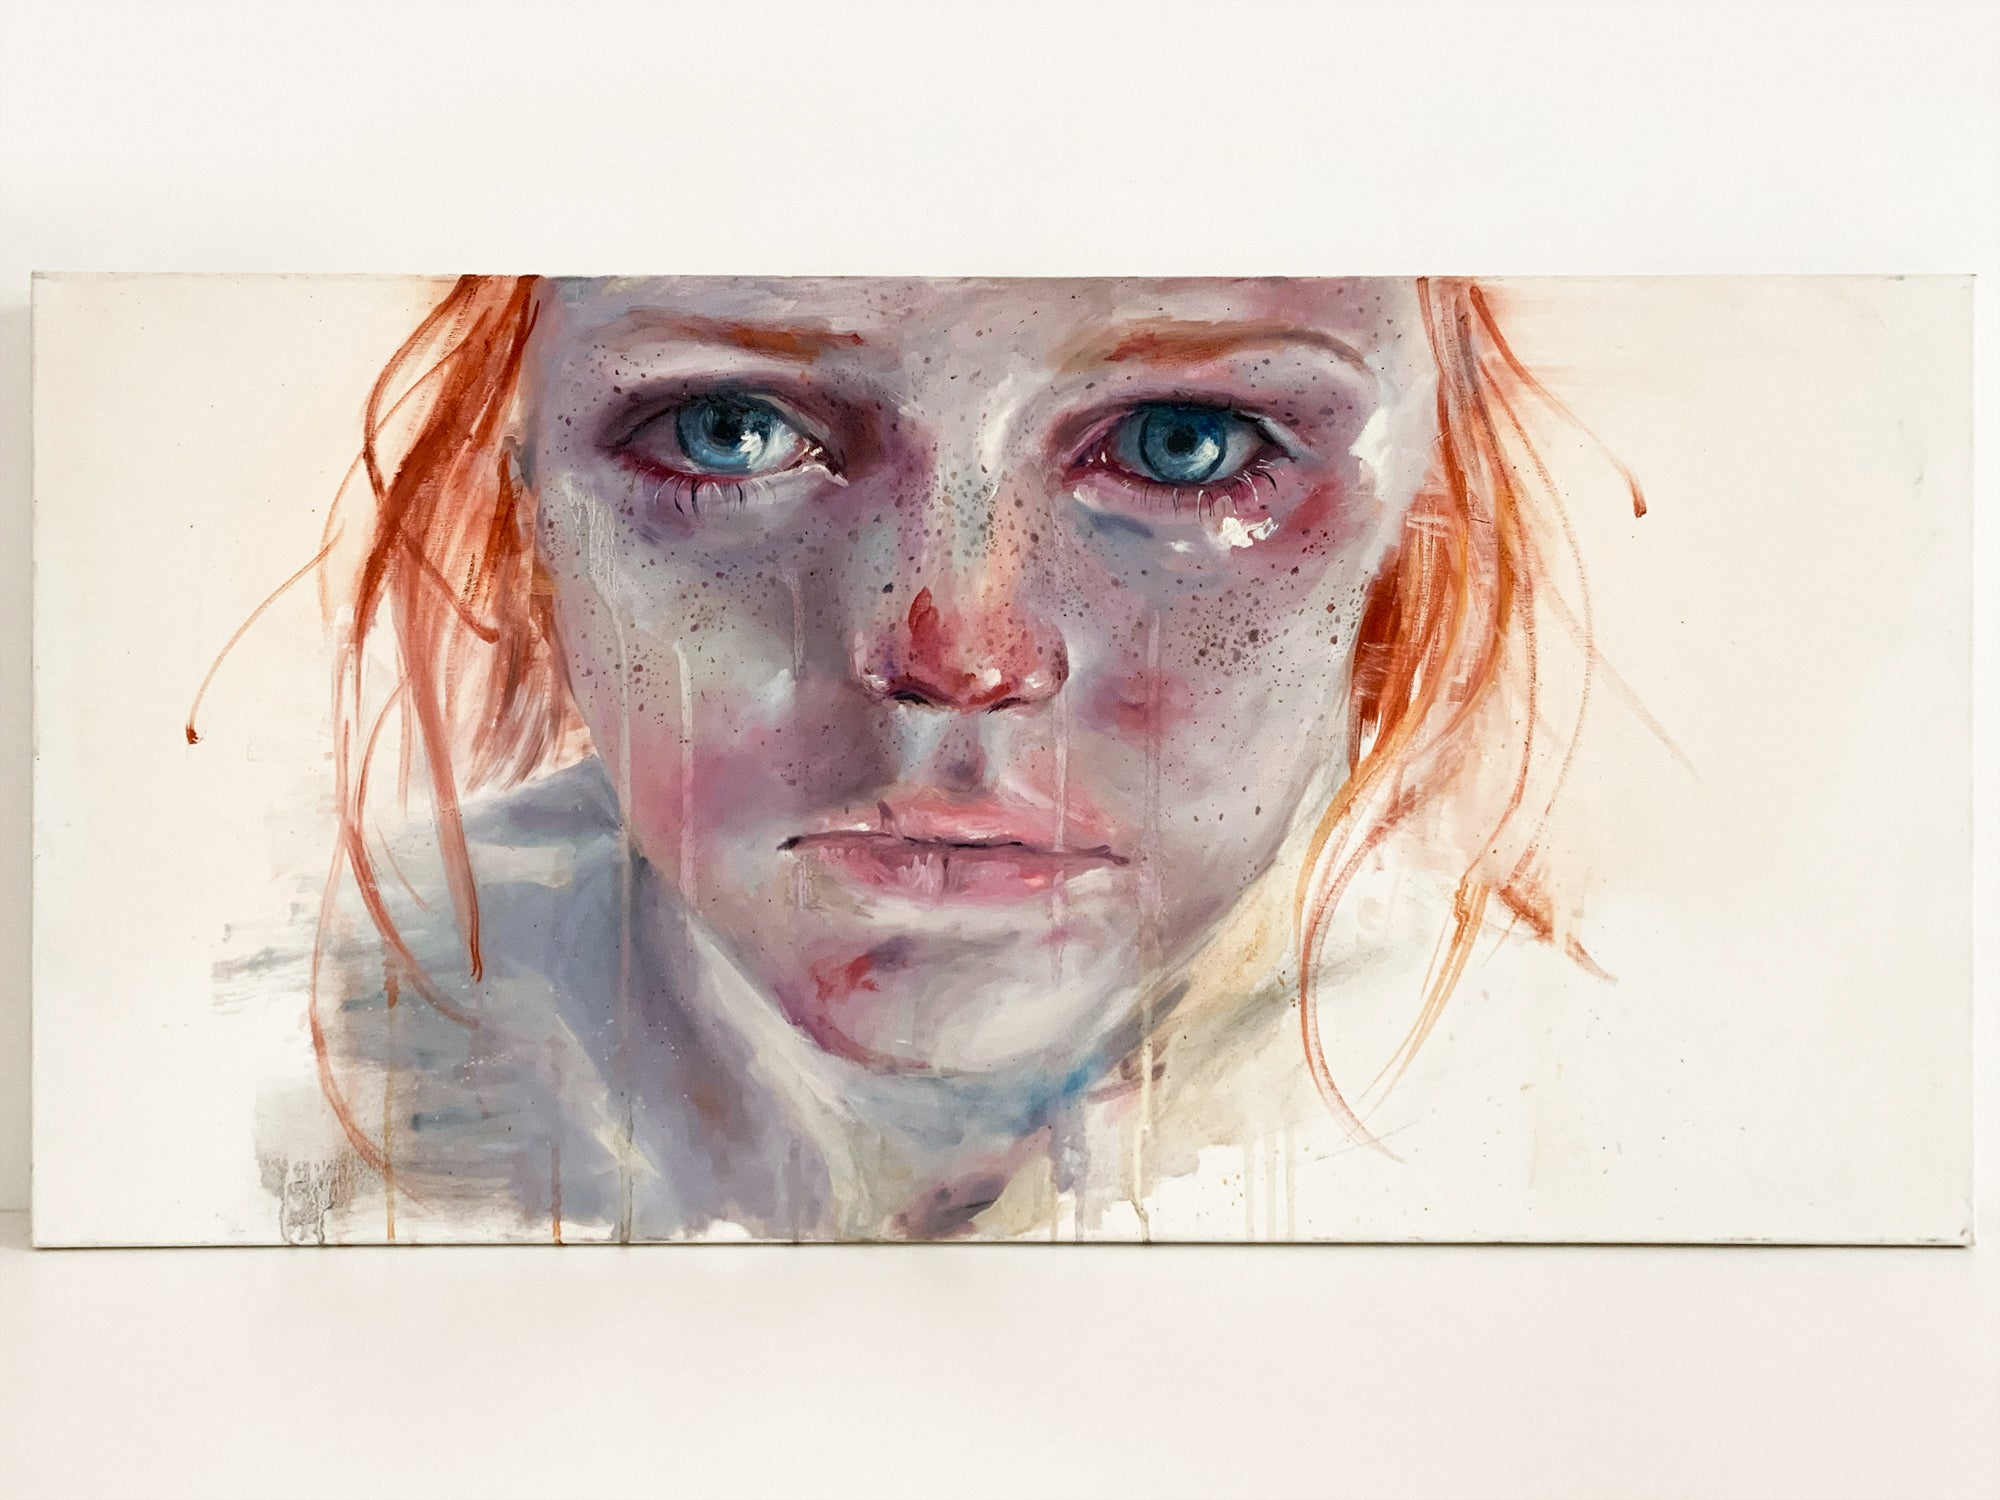 Agnes-Cecile my eyes refuse to accept passive tears